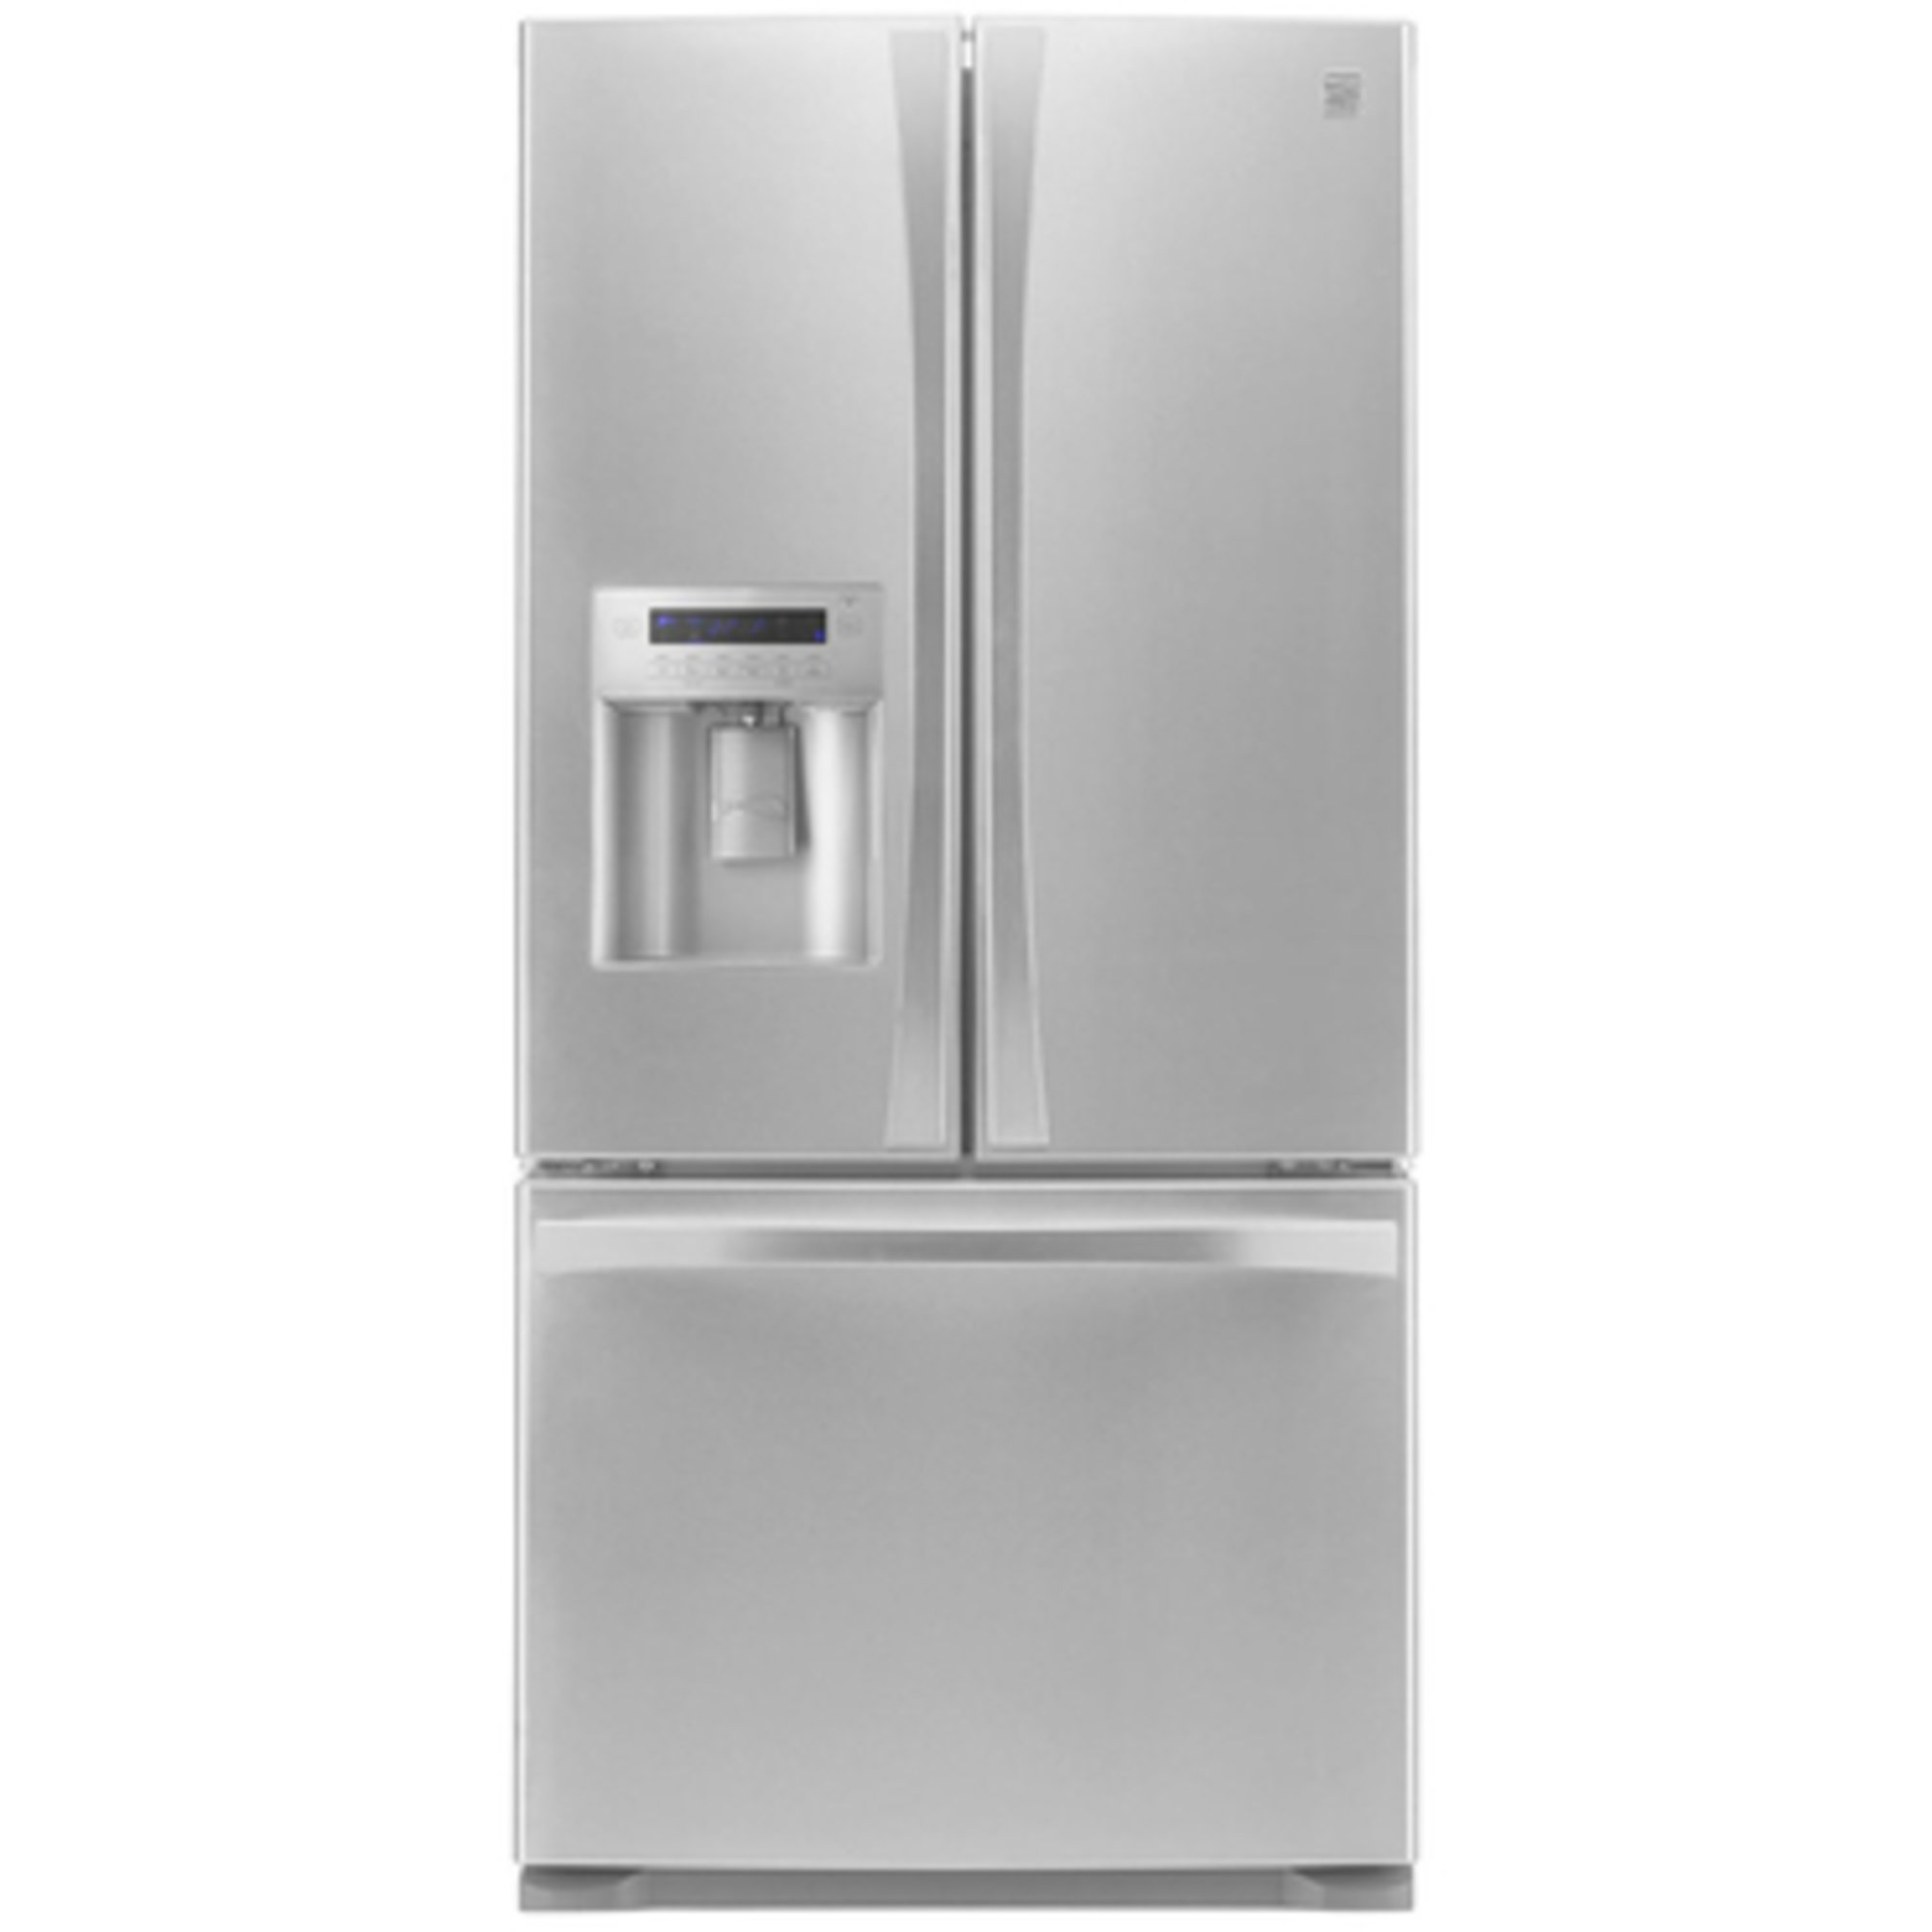 french fre doors fridge manual elite all kenmore white refrigerator door bottom